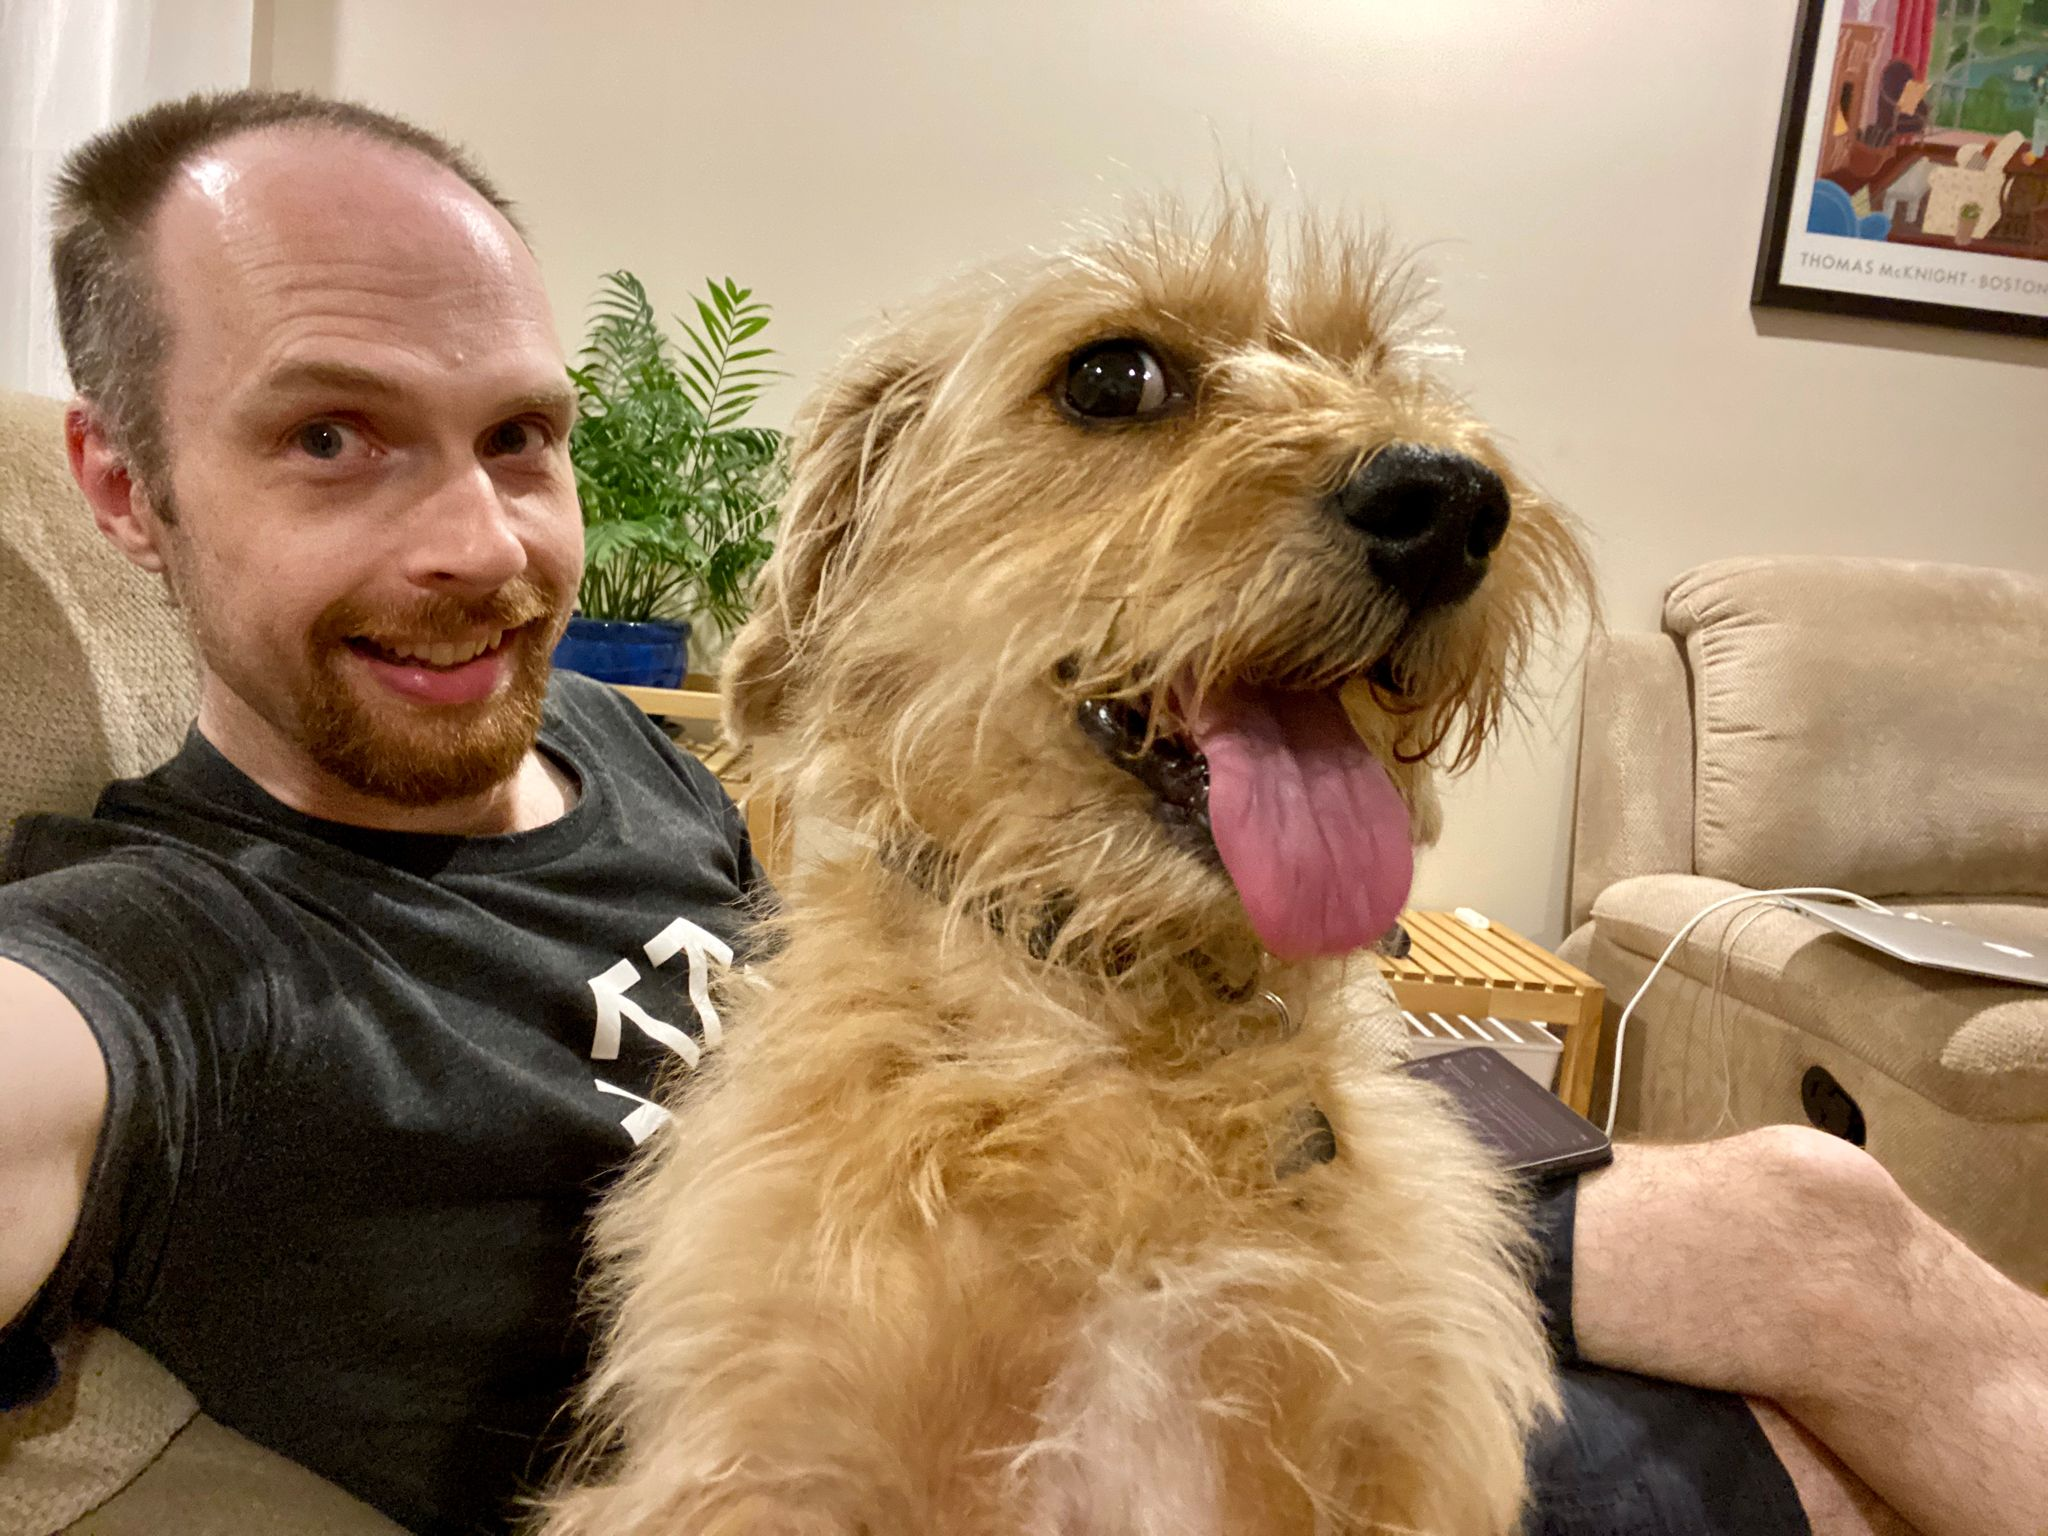 A small scruffy blonde dog right in front of the camera with his mouth open panting which makes him look like he's smiling, with me, a white man with a red goatee, in the background. We're both looking at the camera.